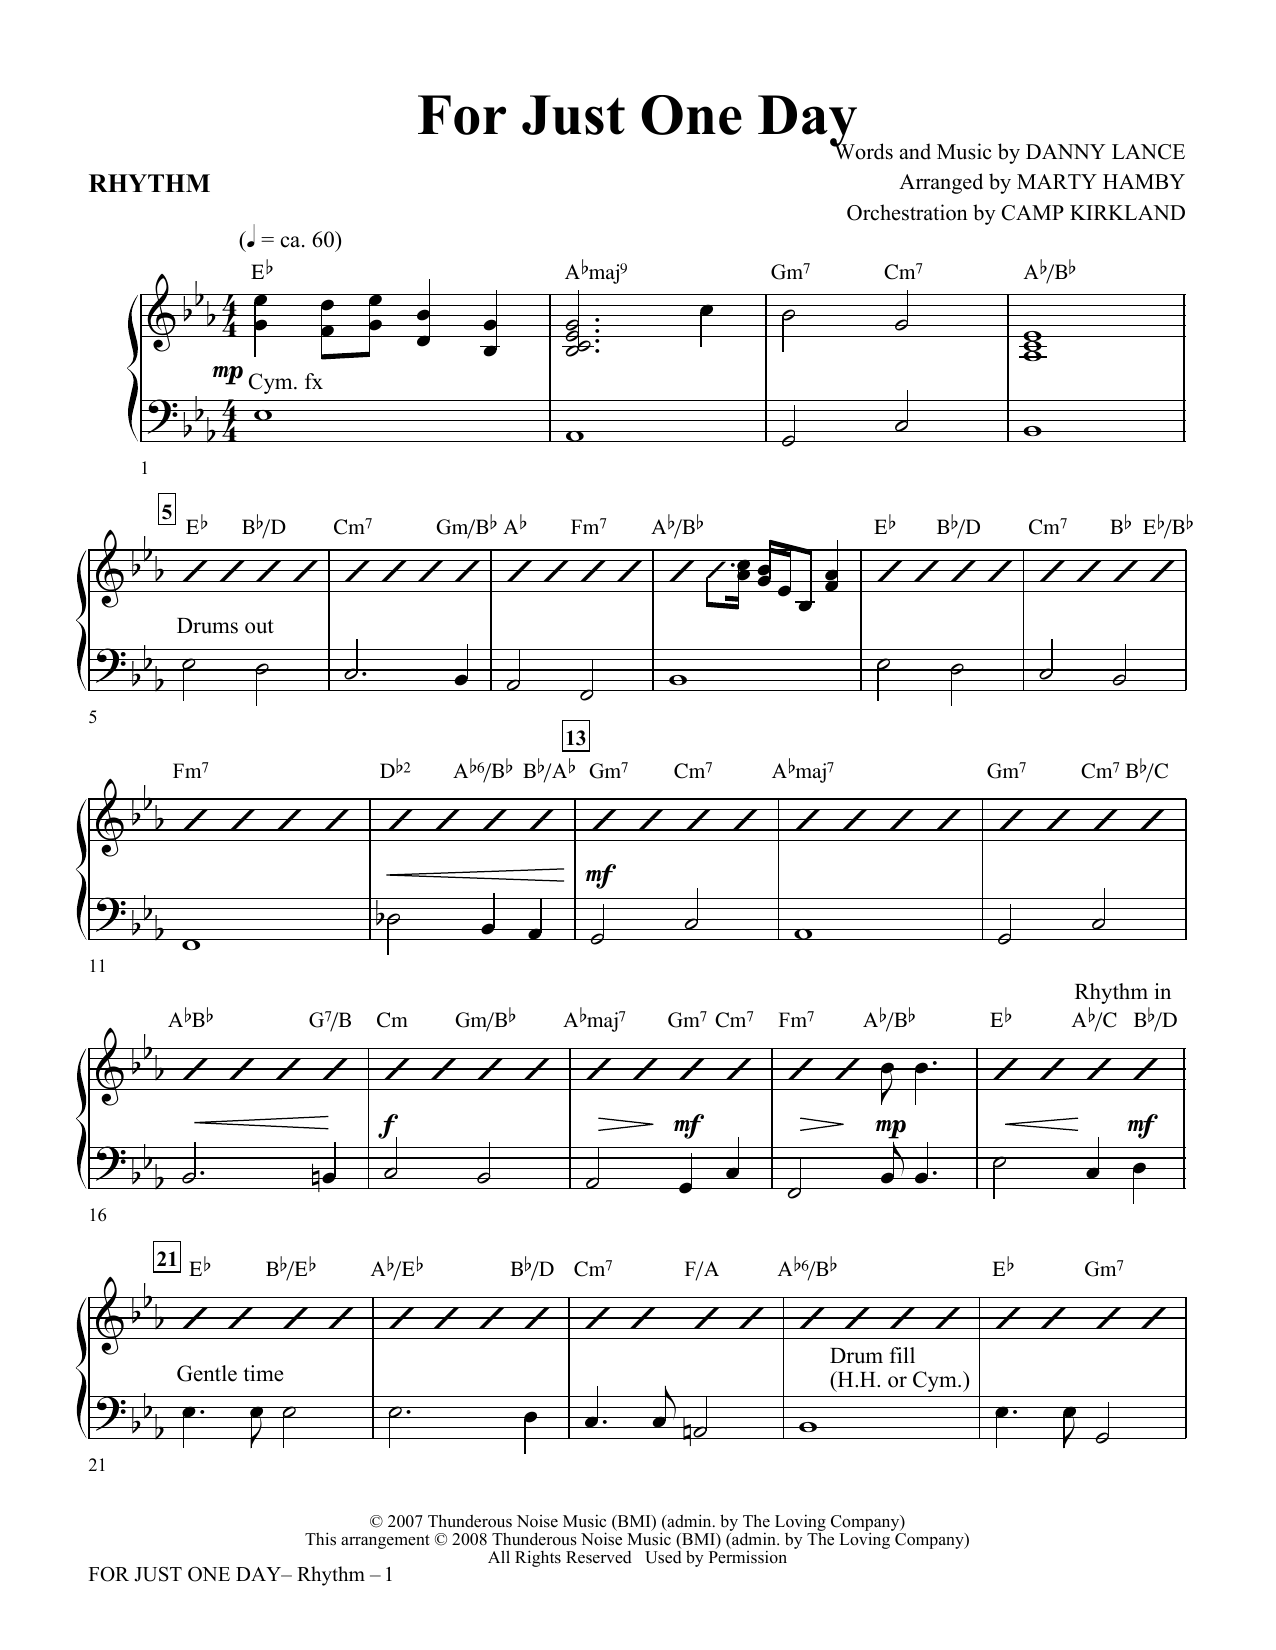 For Just One Day - Rhythm Sheet Music